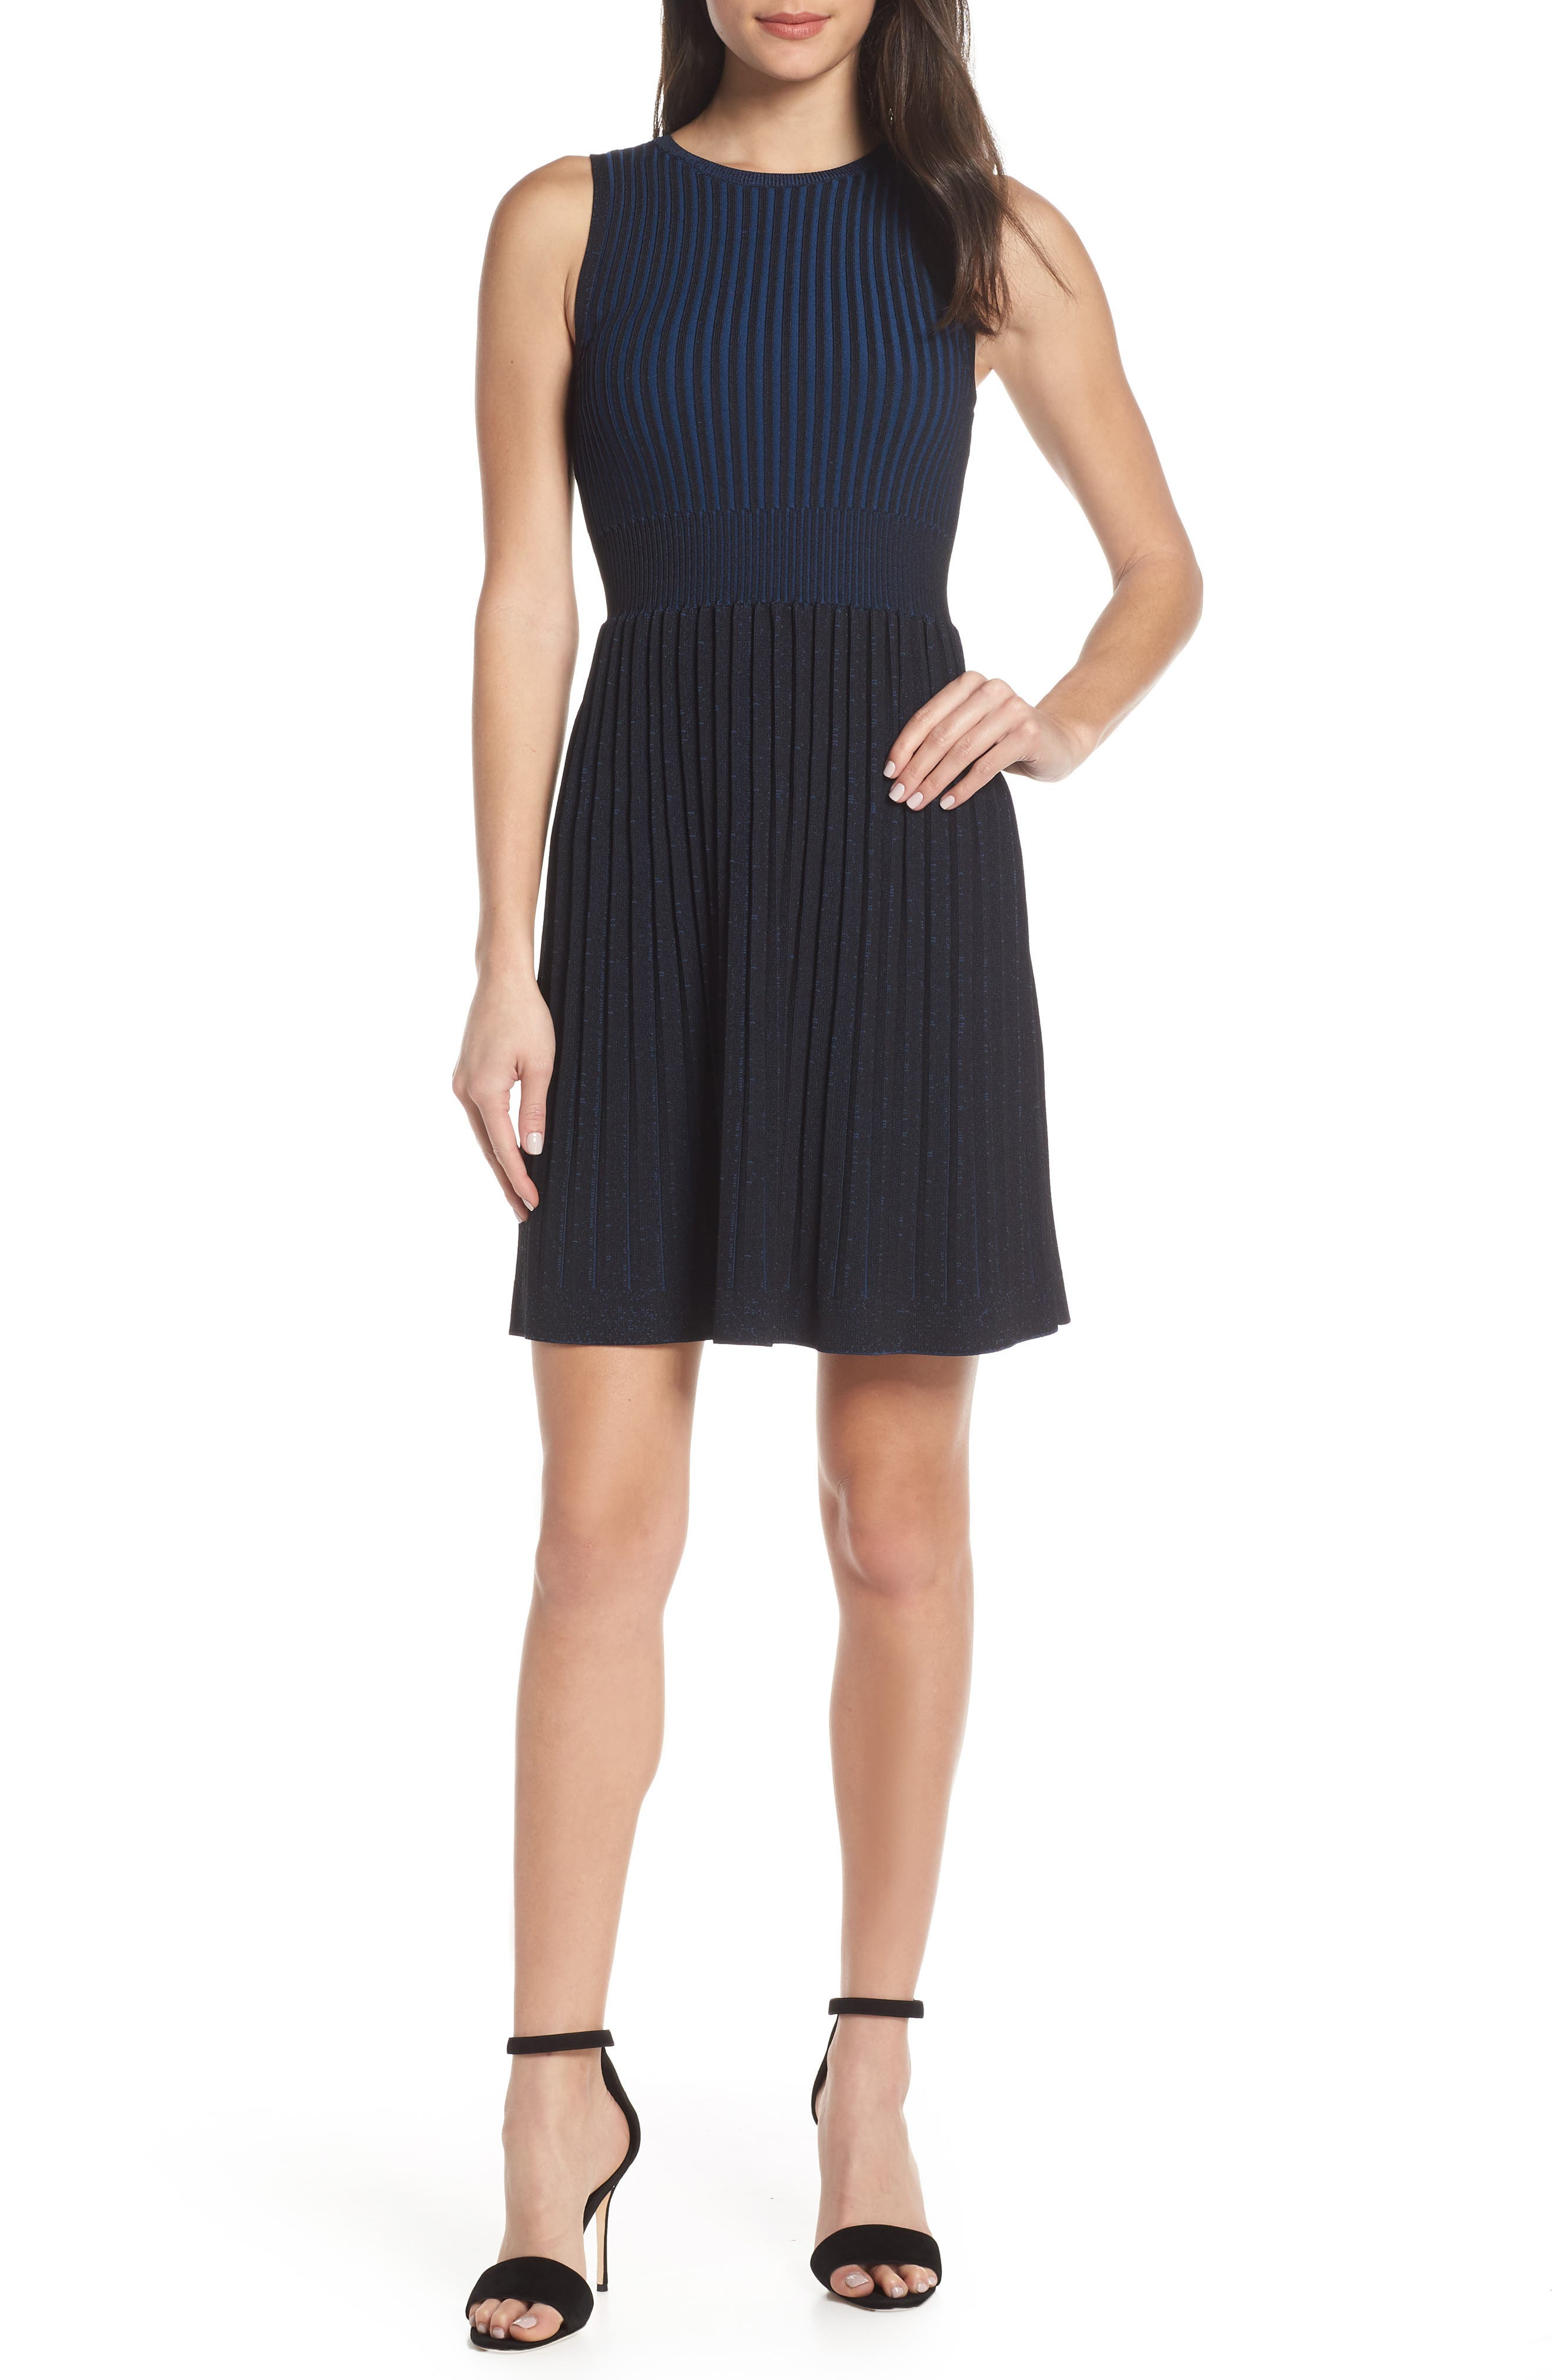 French Connection Fit & Flare Knit Dress, Black